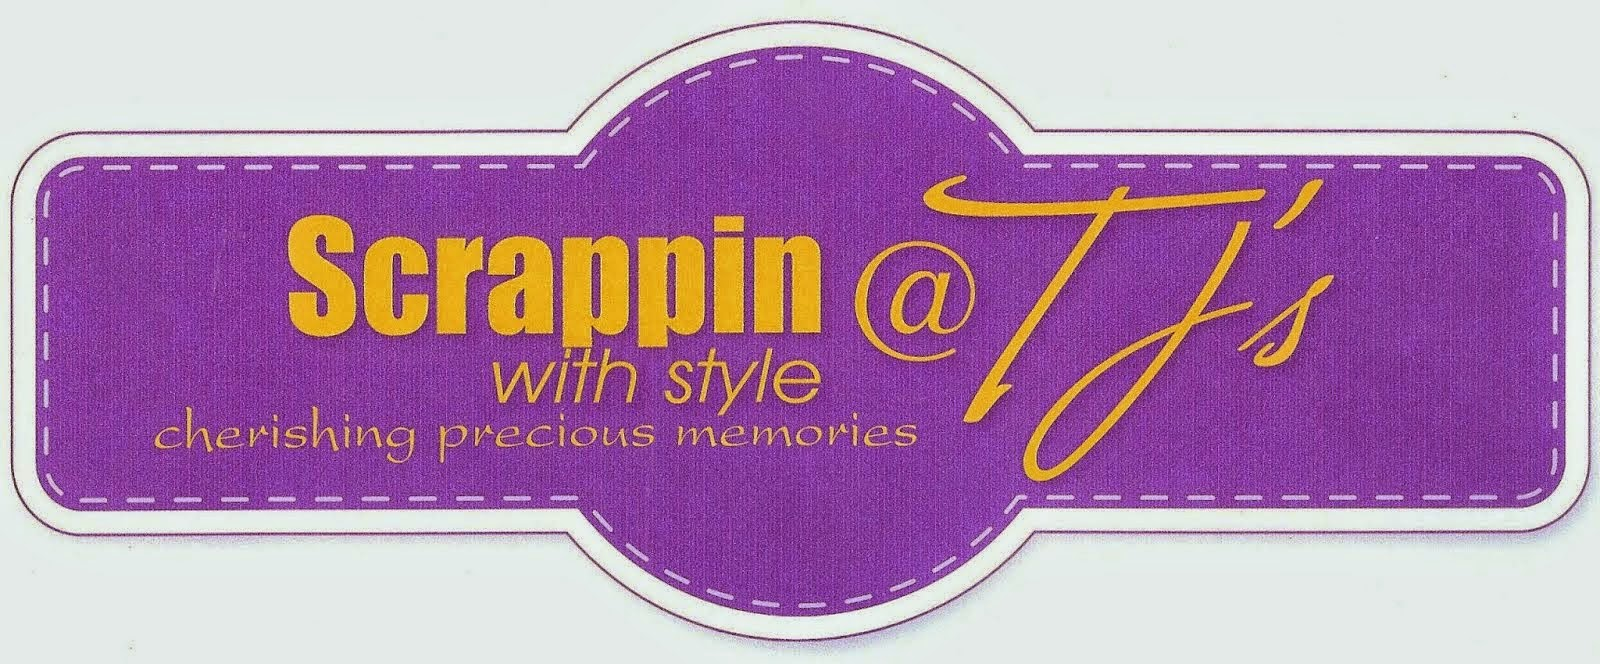 https://www.facebook.com/TjsScrappinWithStyle?fref=ts